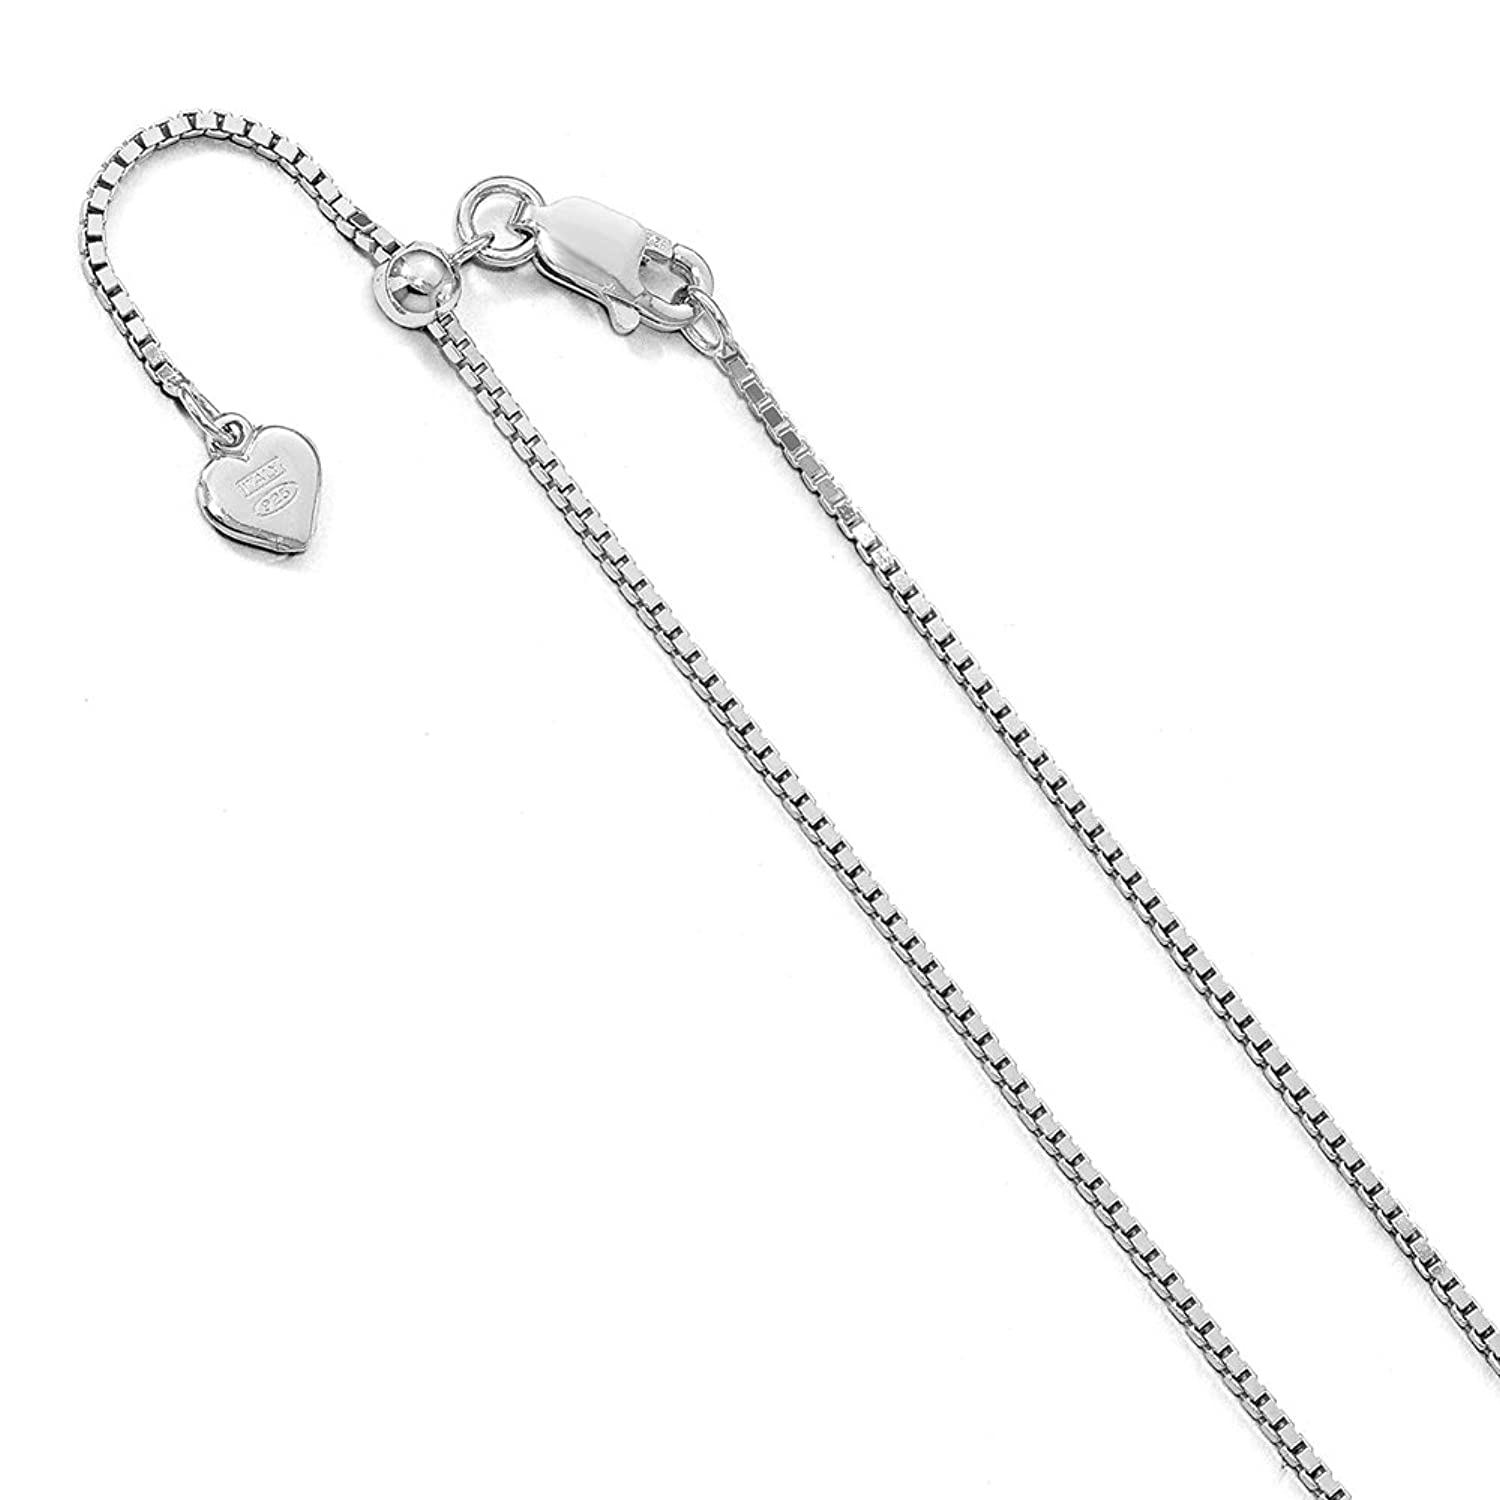 1.2mm Sterling Silver Adjustable Box Chain Anklet, 11 Inch